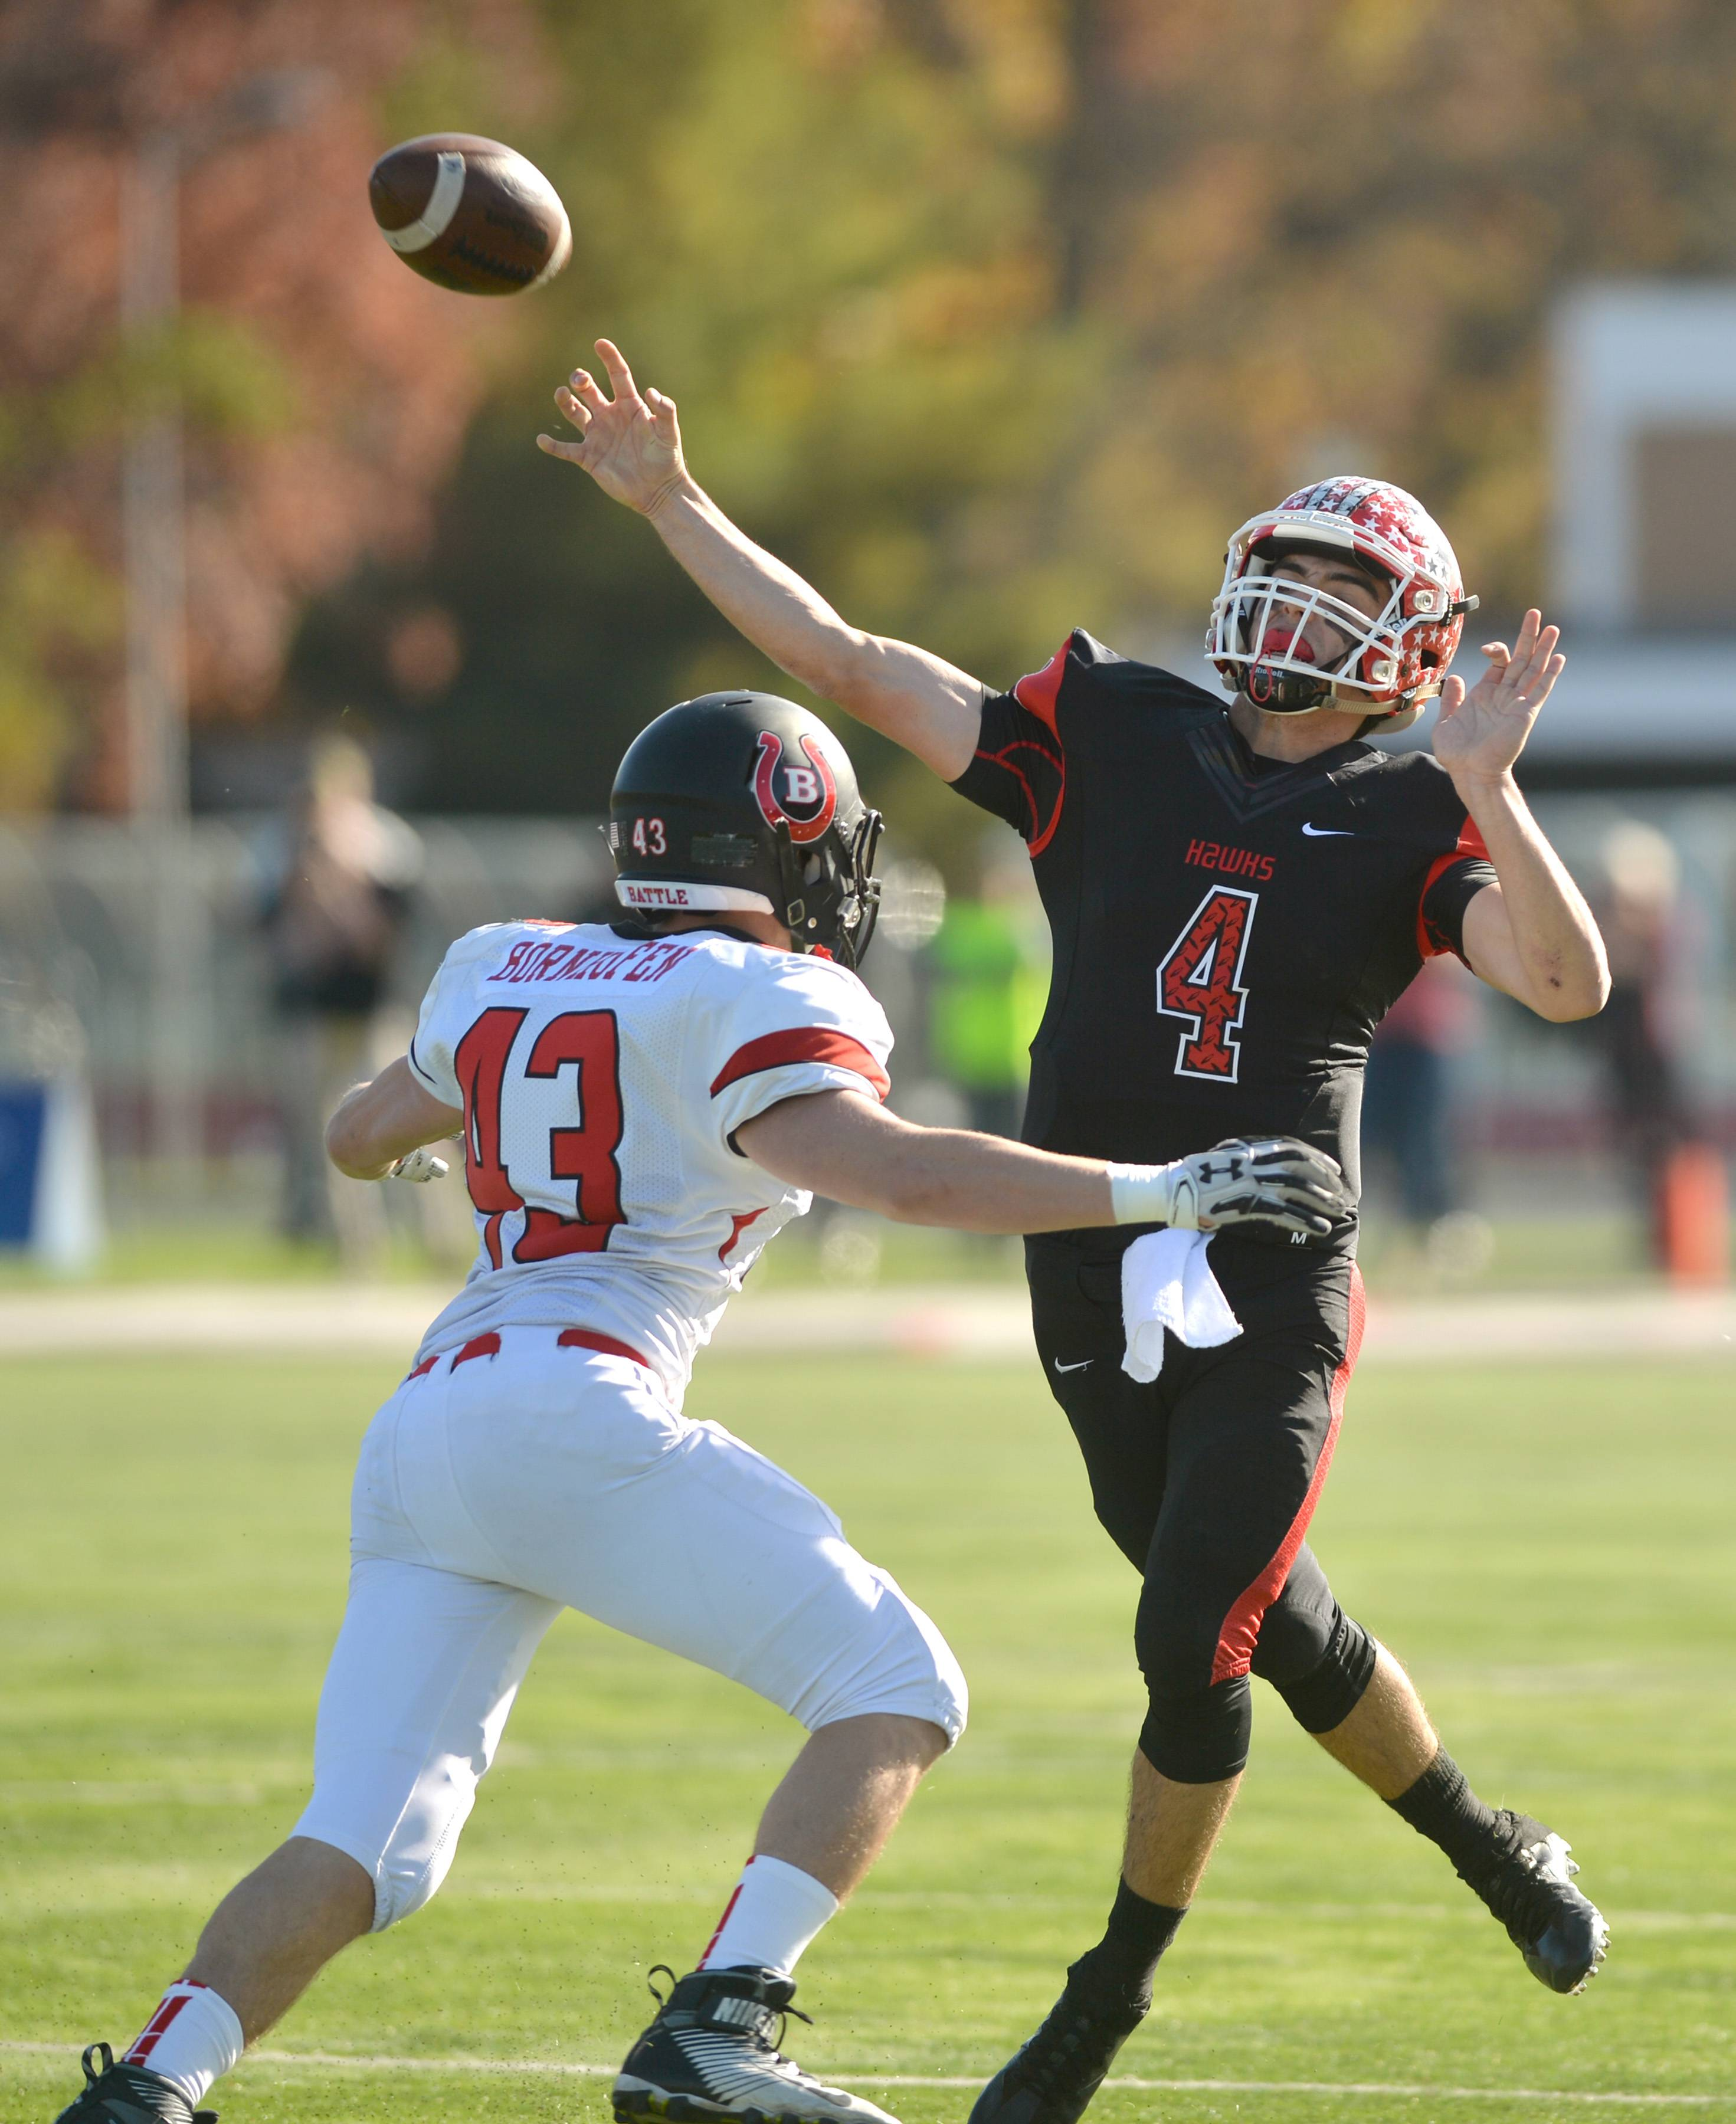 Maine South quarterback Nick Leongas passes under pressure from Barrington linebacker Ryan Bornhofen in Class 8A second-round play Saturday in Park Ridge.